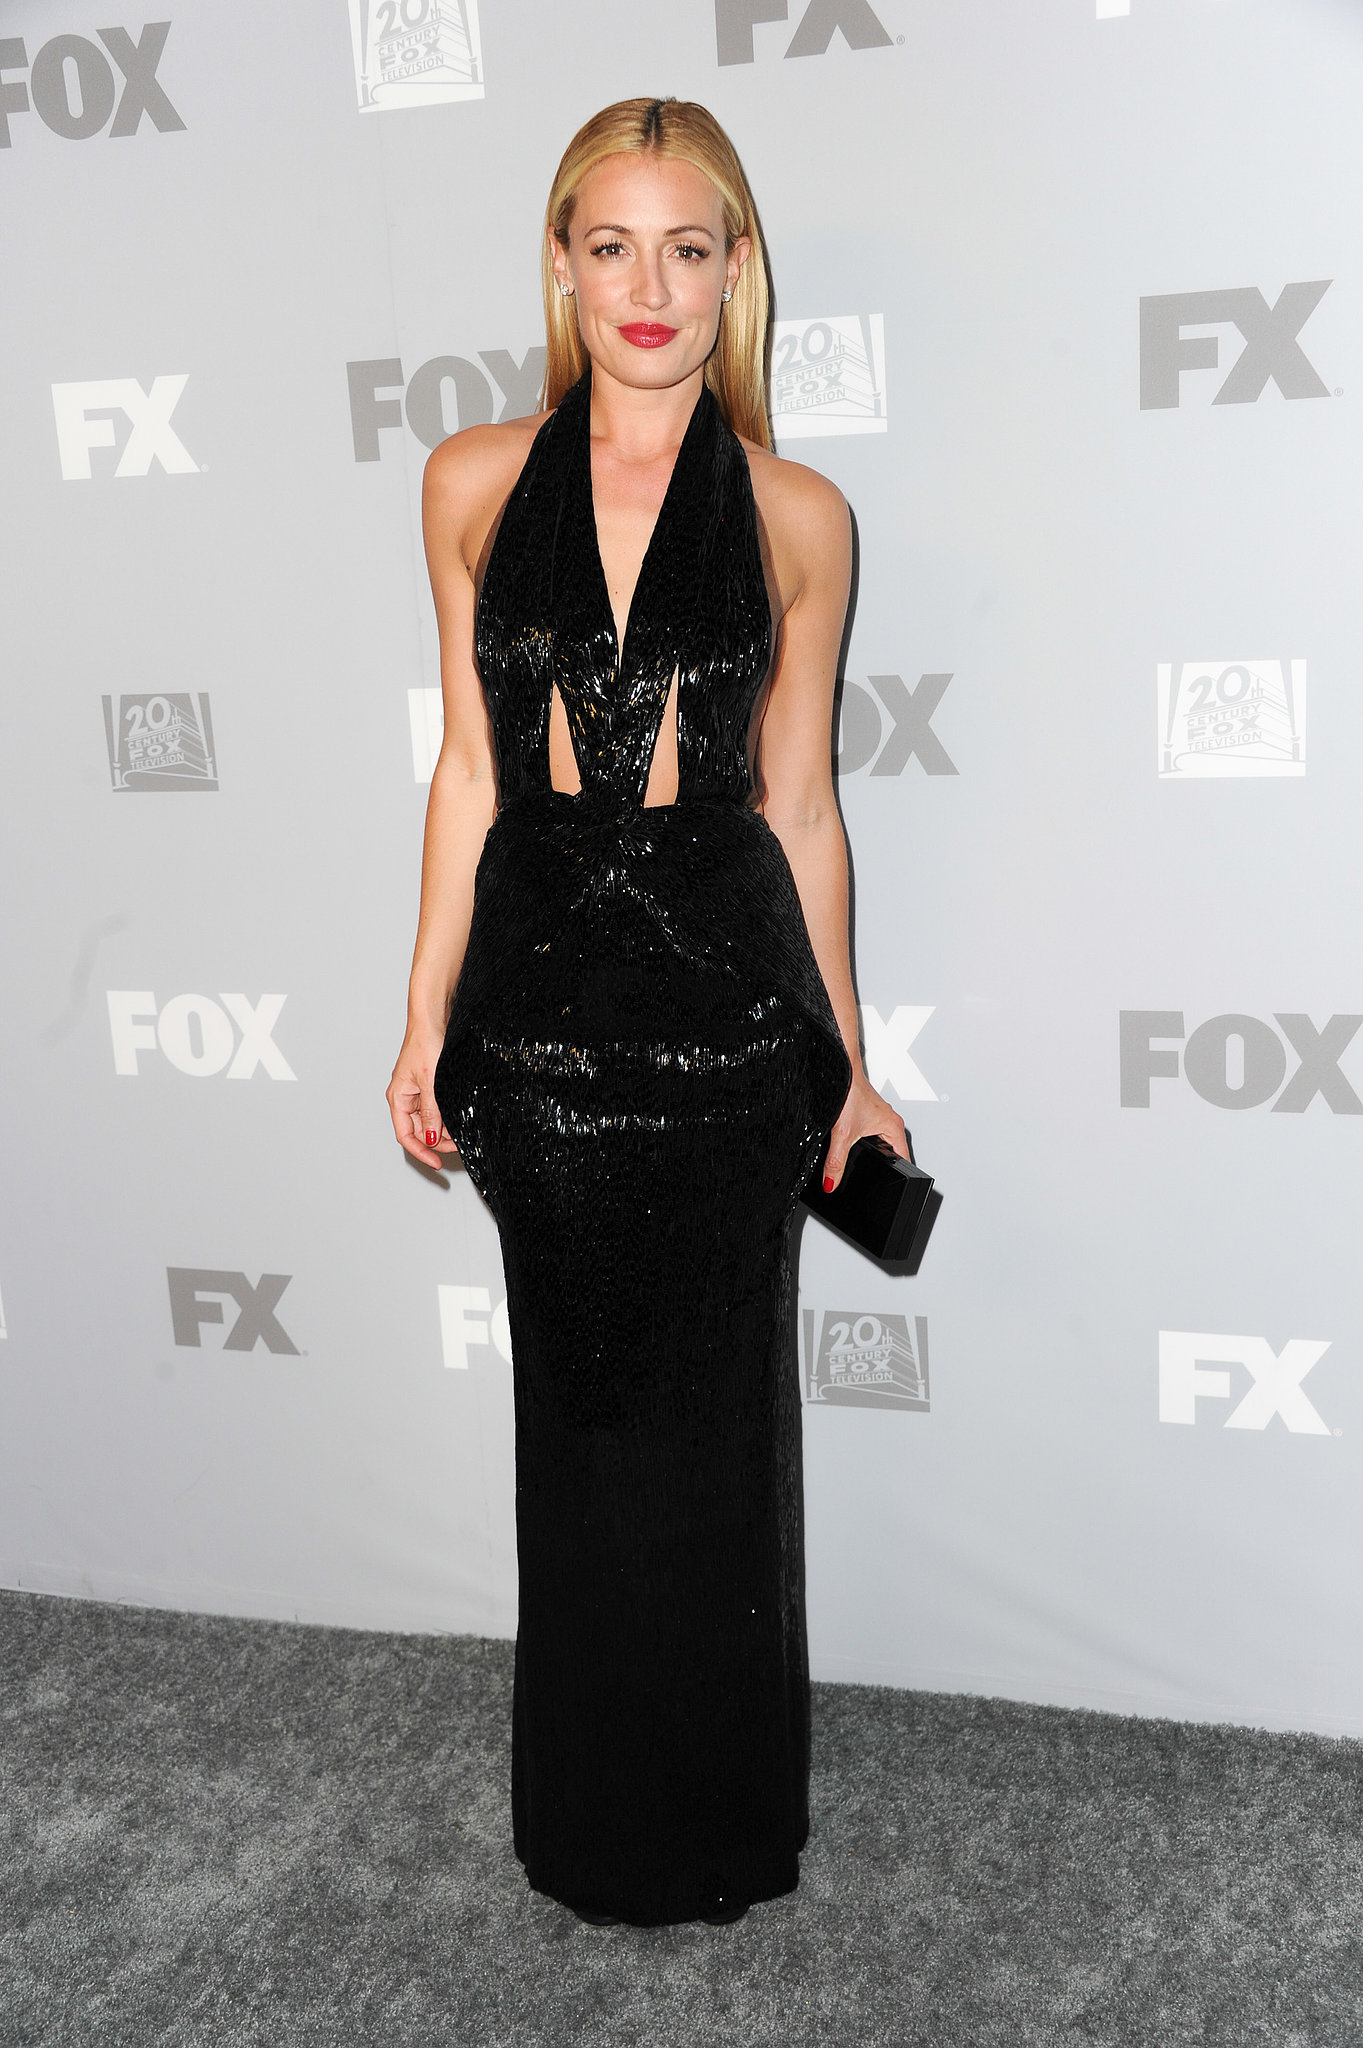 Between the sequins and the cutouts, Cat Deeley's black halter gown at the Fox afterparty was simply dazzling. She finished with Jimmy Choo sandal